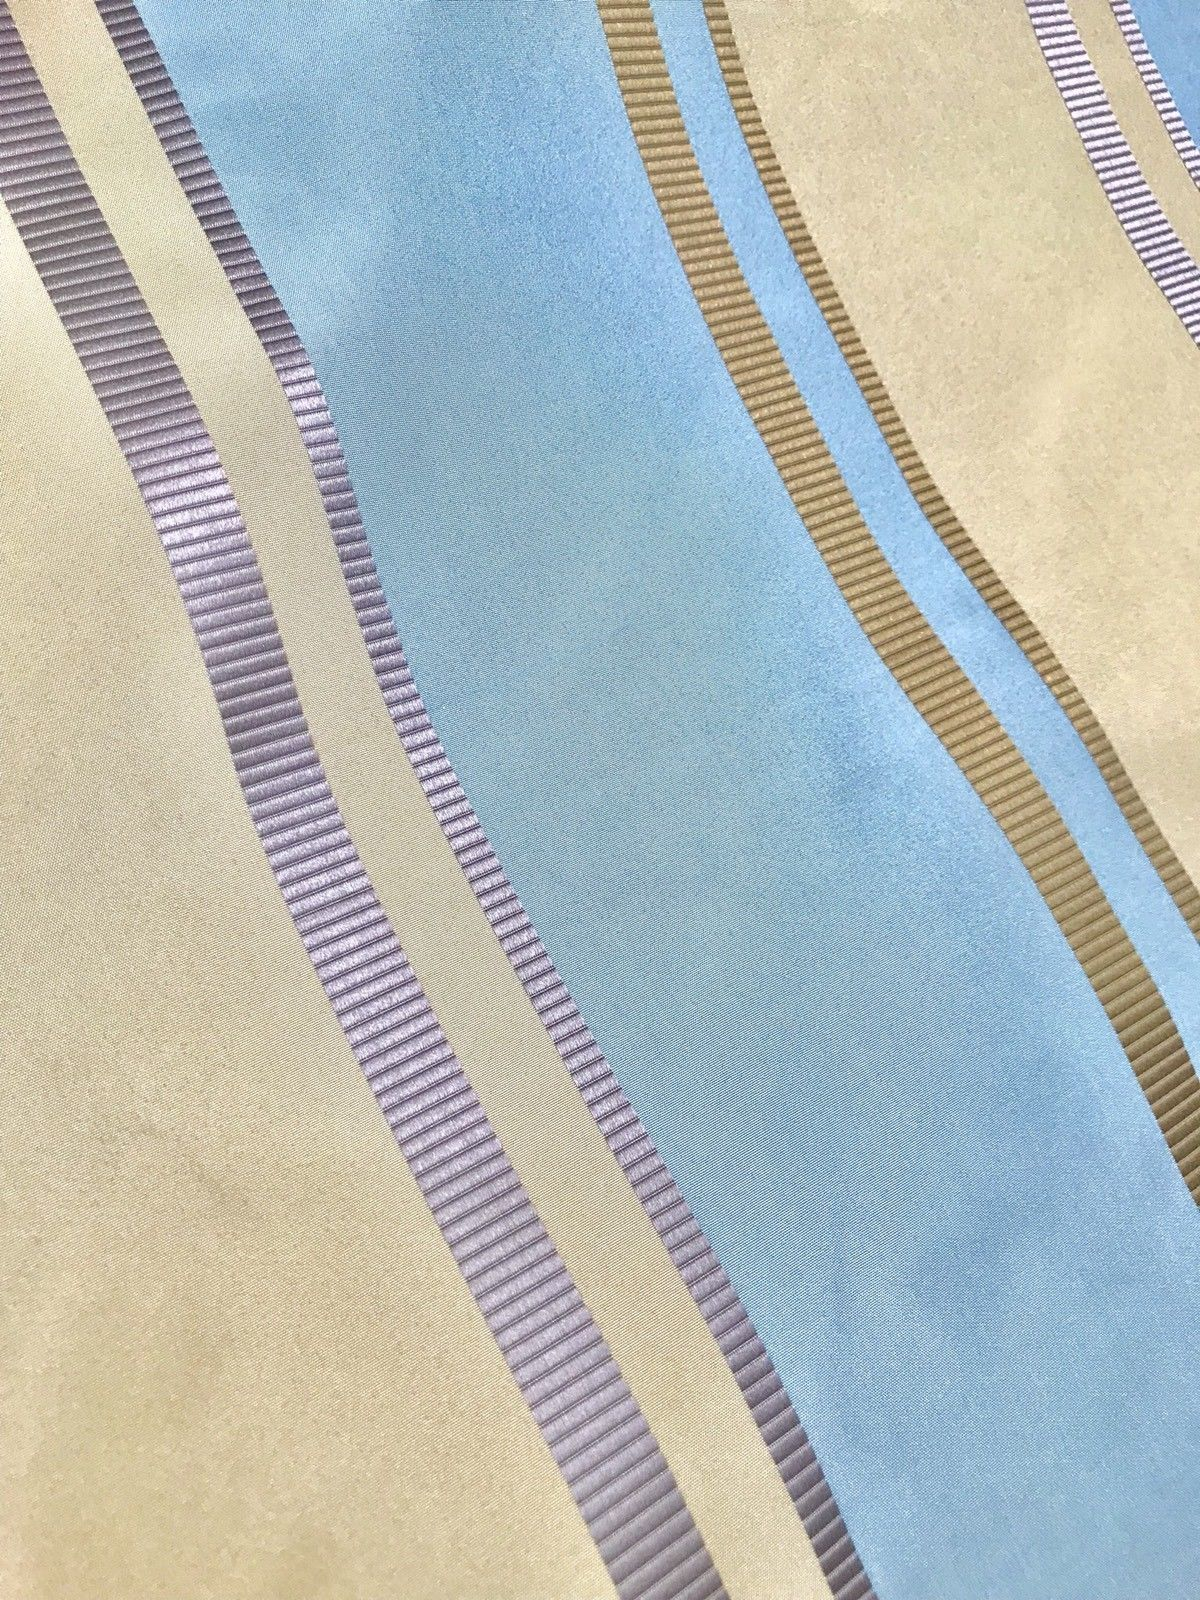 NEW 100% Silk Taffeta Drapery Decorating Fabric - Blue Gold Stripes By The Yard - Fancy Styles Fabric Pierre Frey Lee Jofa Brunschwig & Fils